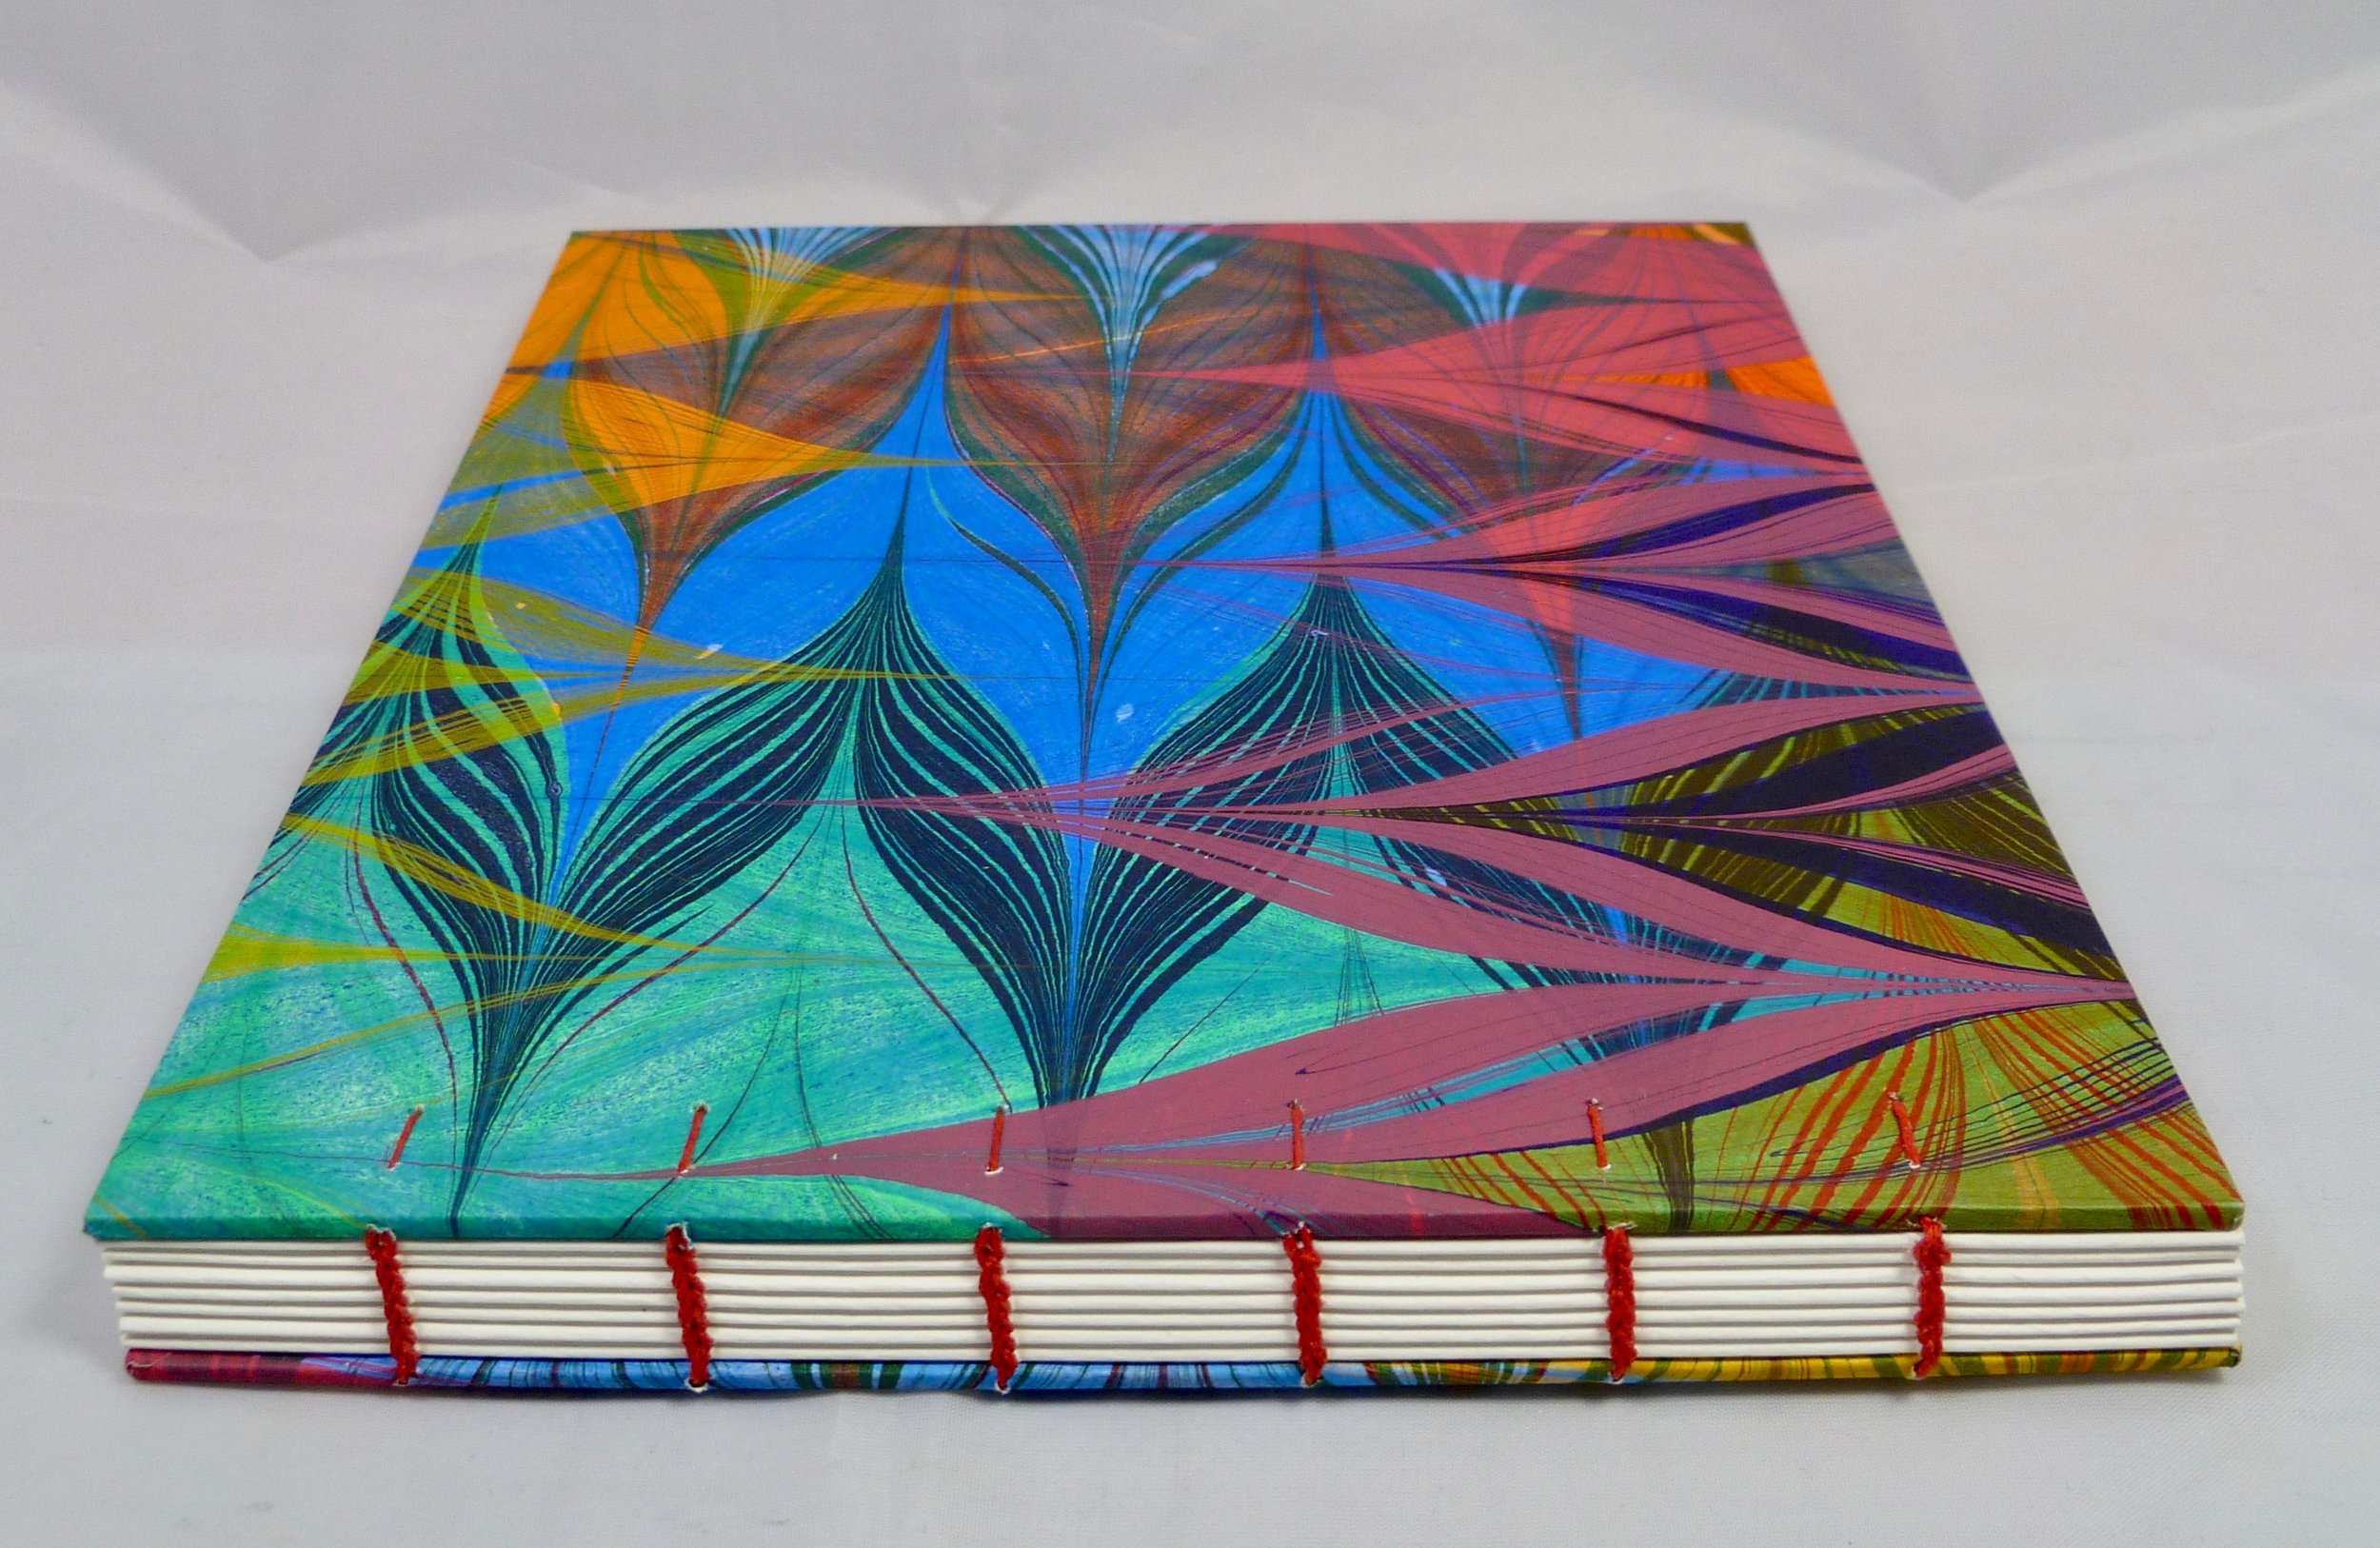 PassionatoBooks - Unique hand-sewn journals with covers of marbled, Japanese, maps or design papers by Laurel Rogers